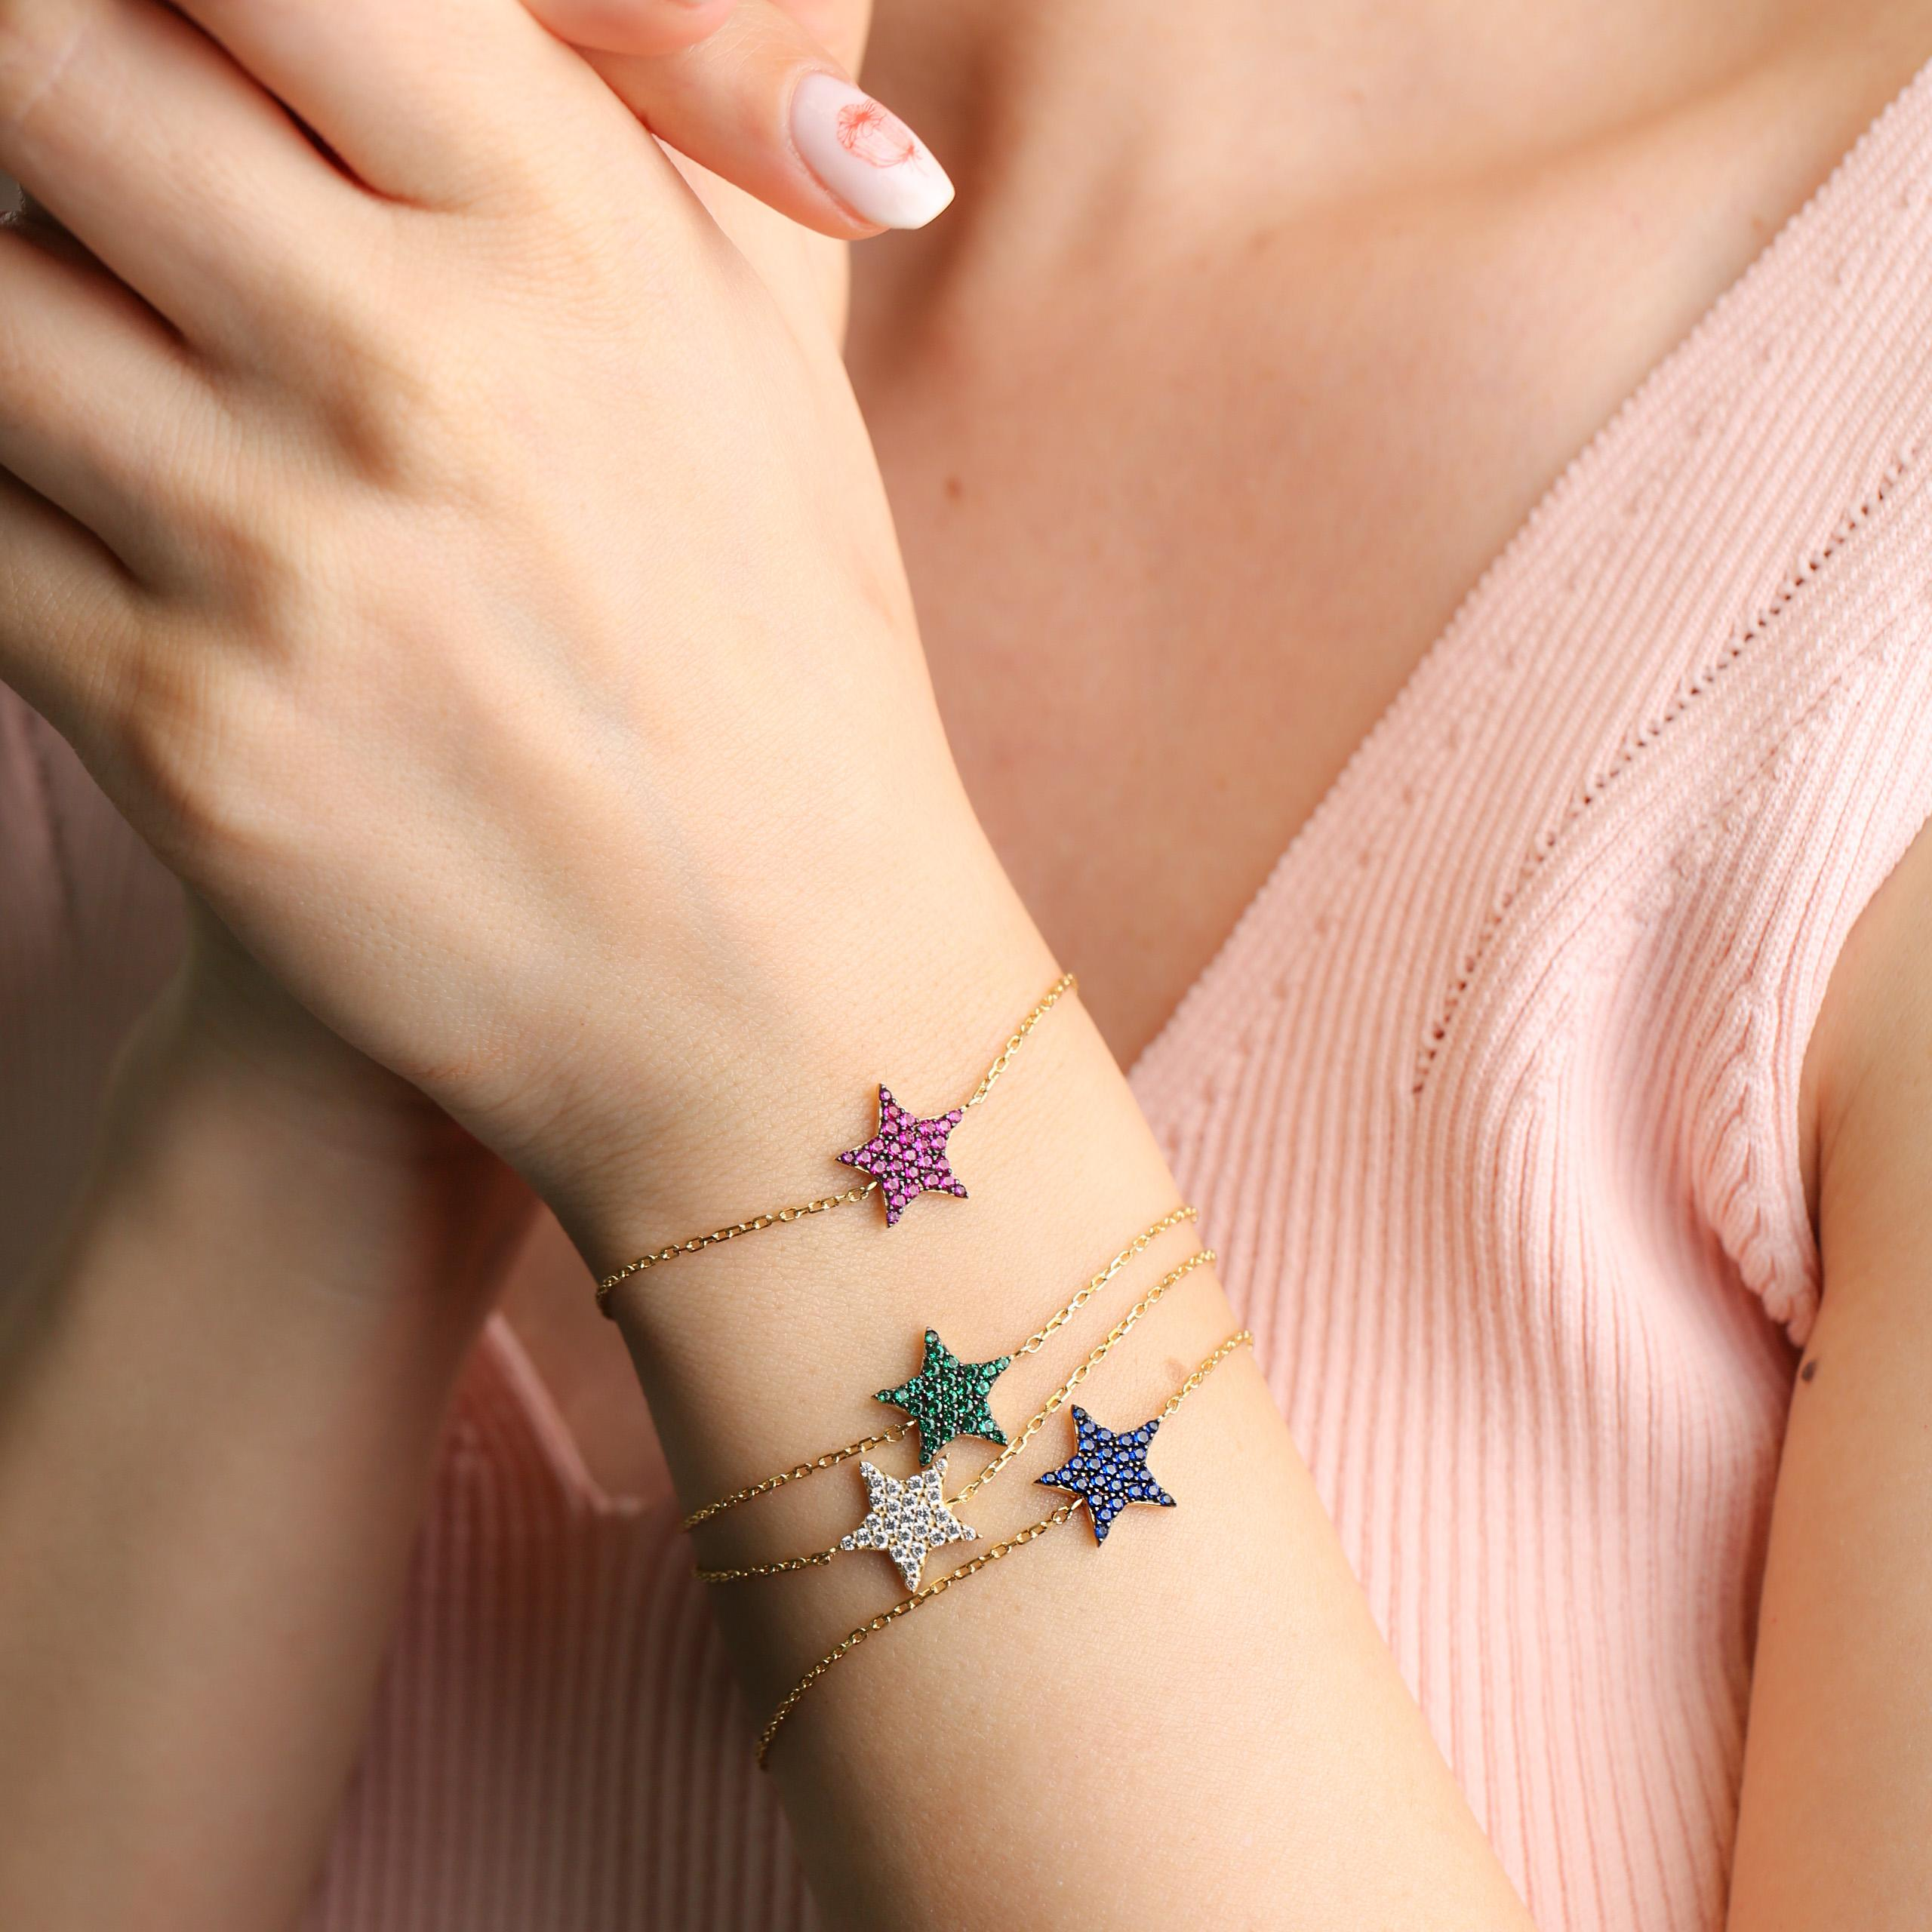 Colorful Star Charm Bracelet Wholesale Turkish 925 Sterling Silver Jewelry